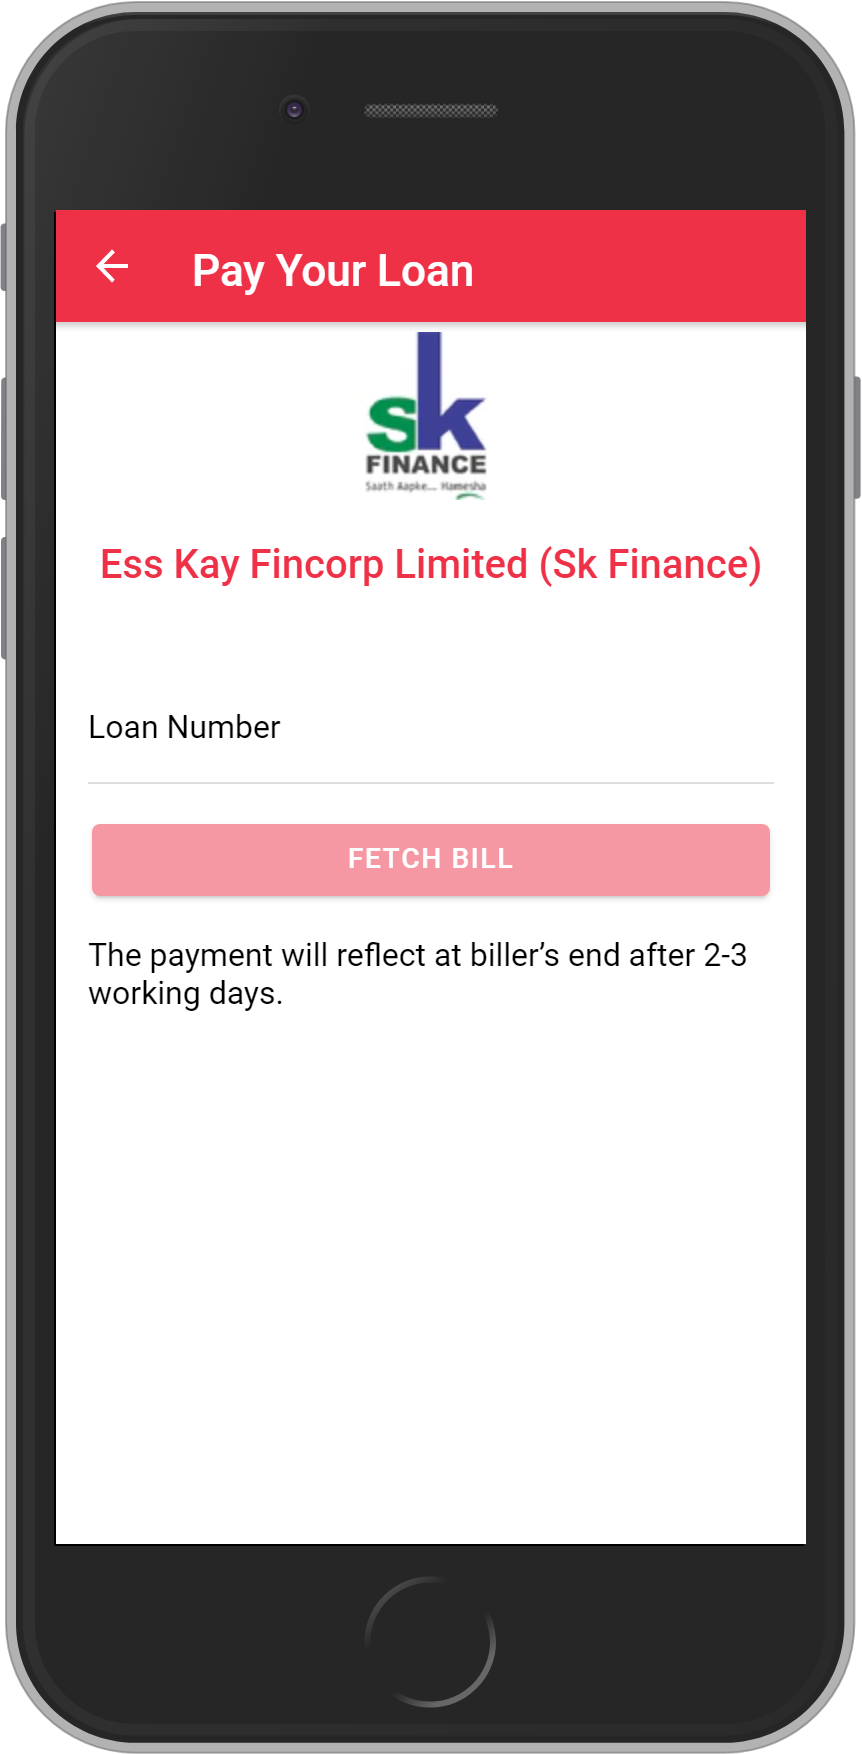 Get UNLIMITED <b>0.1%</b> CASHBACK on Ess Kay Fincorp Limited (Sk Finance) Loan Payment.